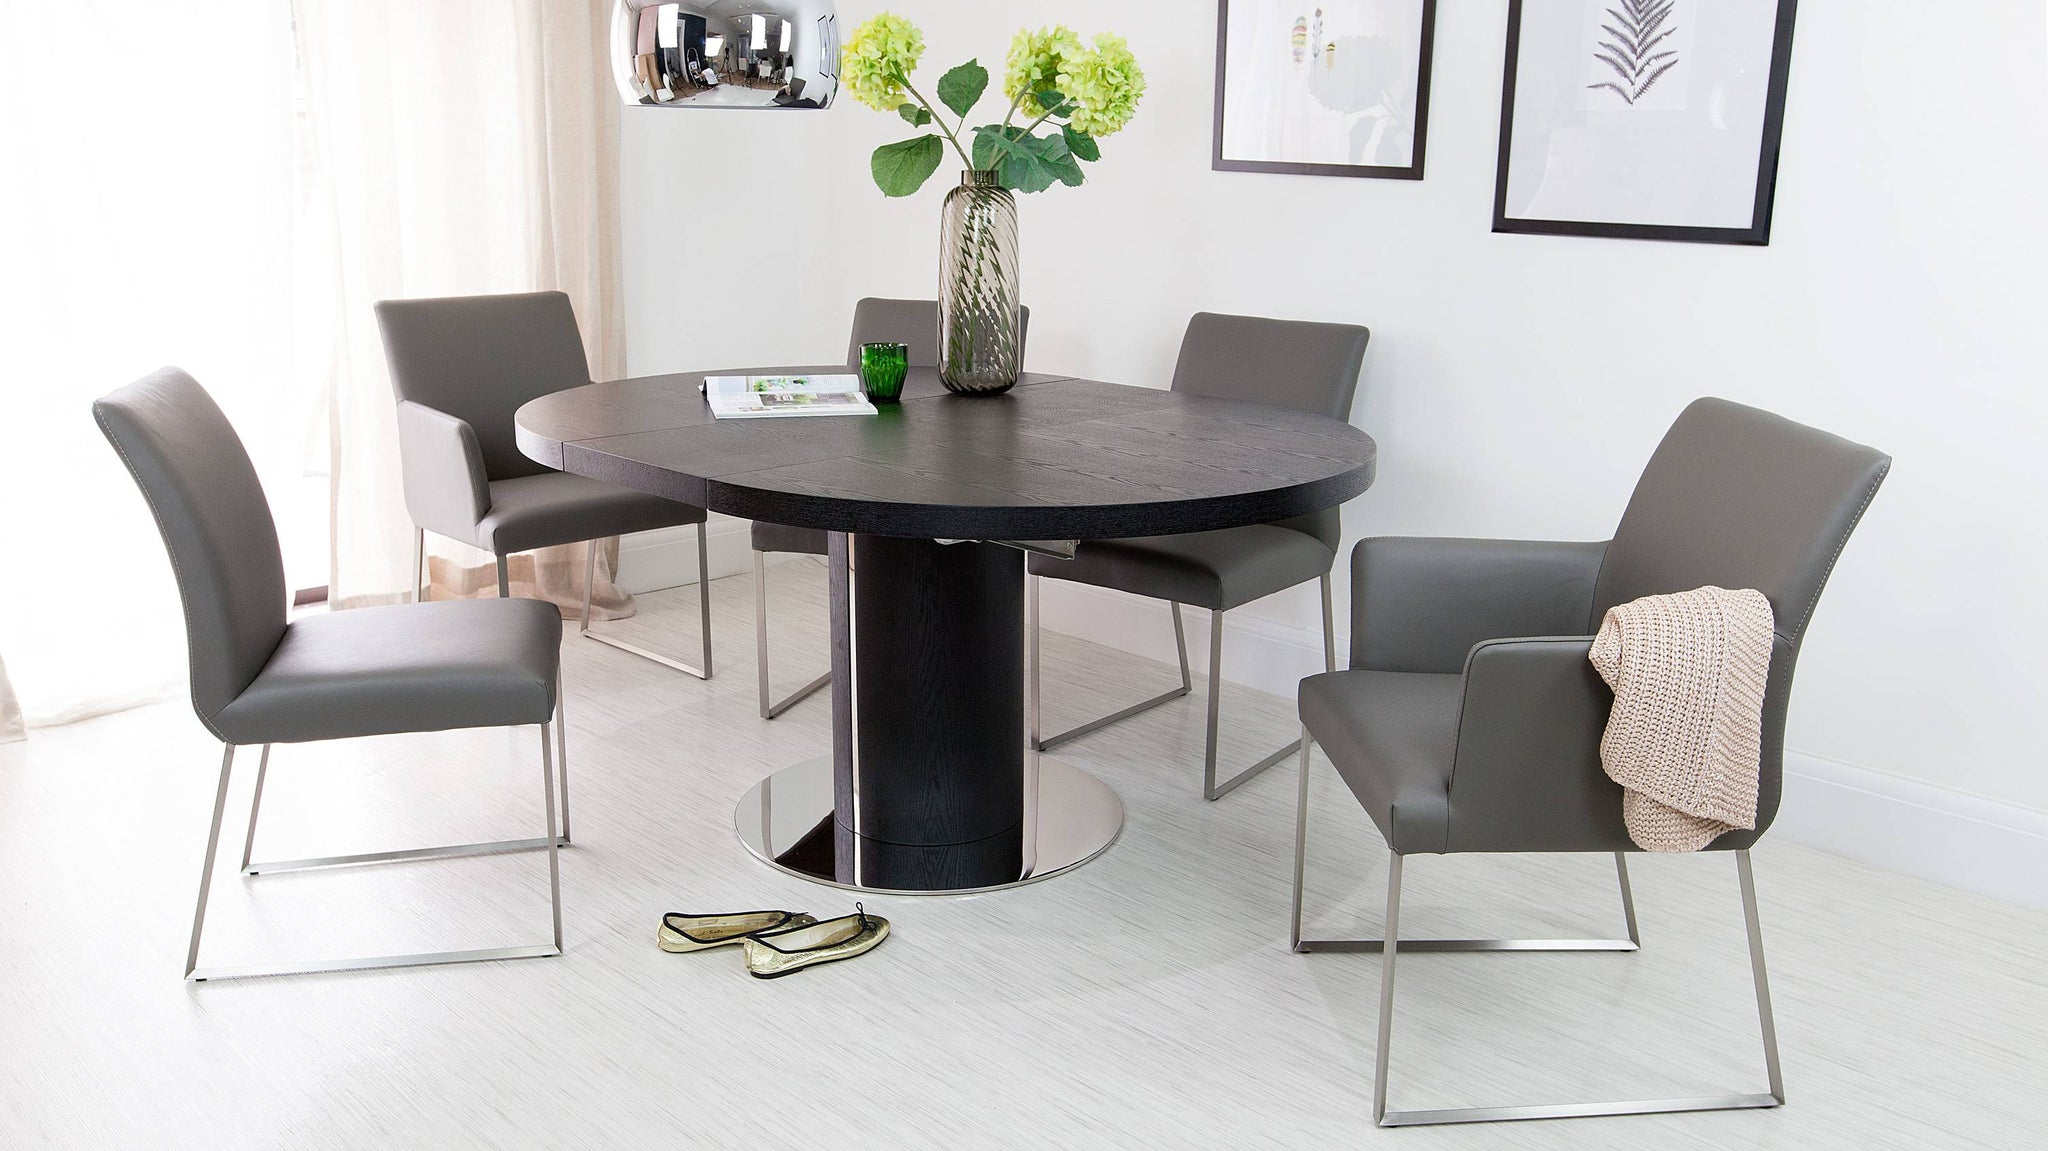 Grey Real Leather Dining Chairs and Extending Dining Table